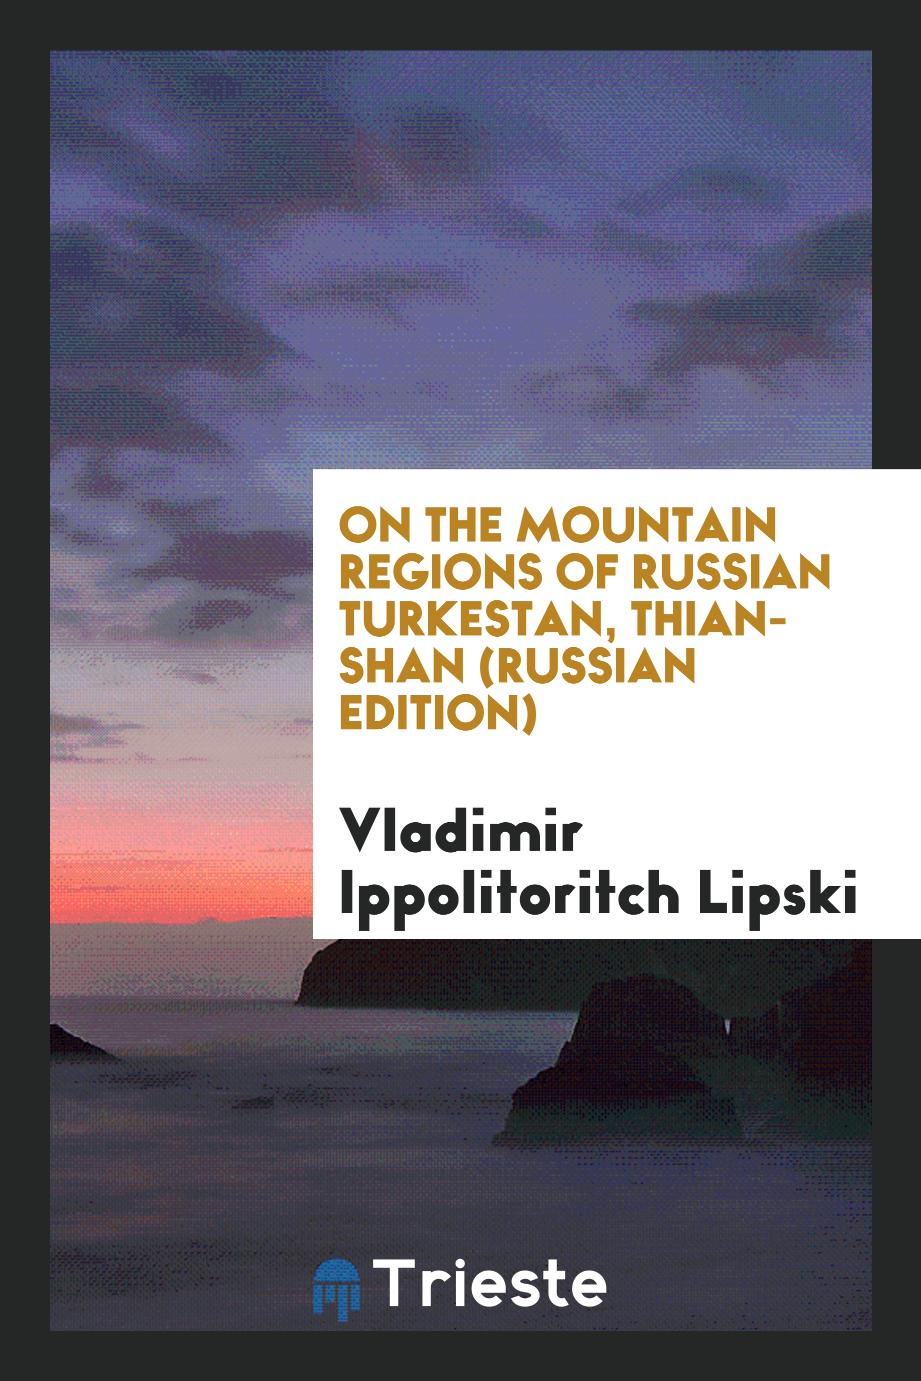 On the Mountain Regions of Russian Turkestan, Thian-Shan (Russian Edition)